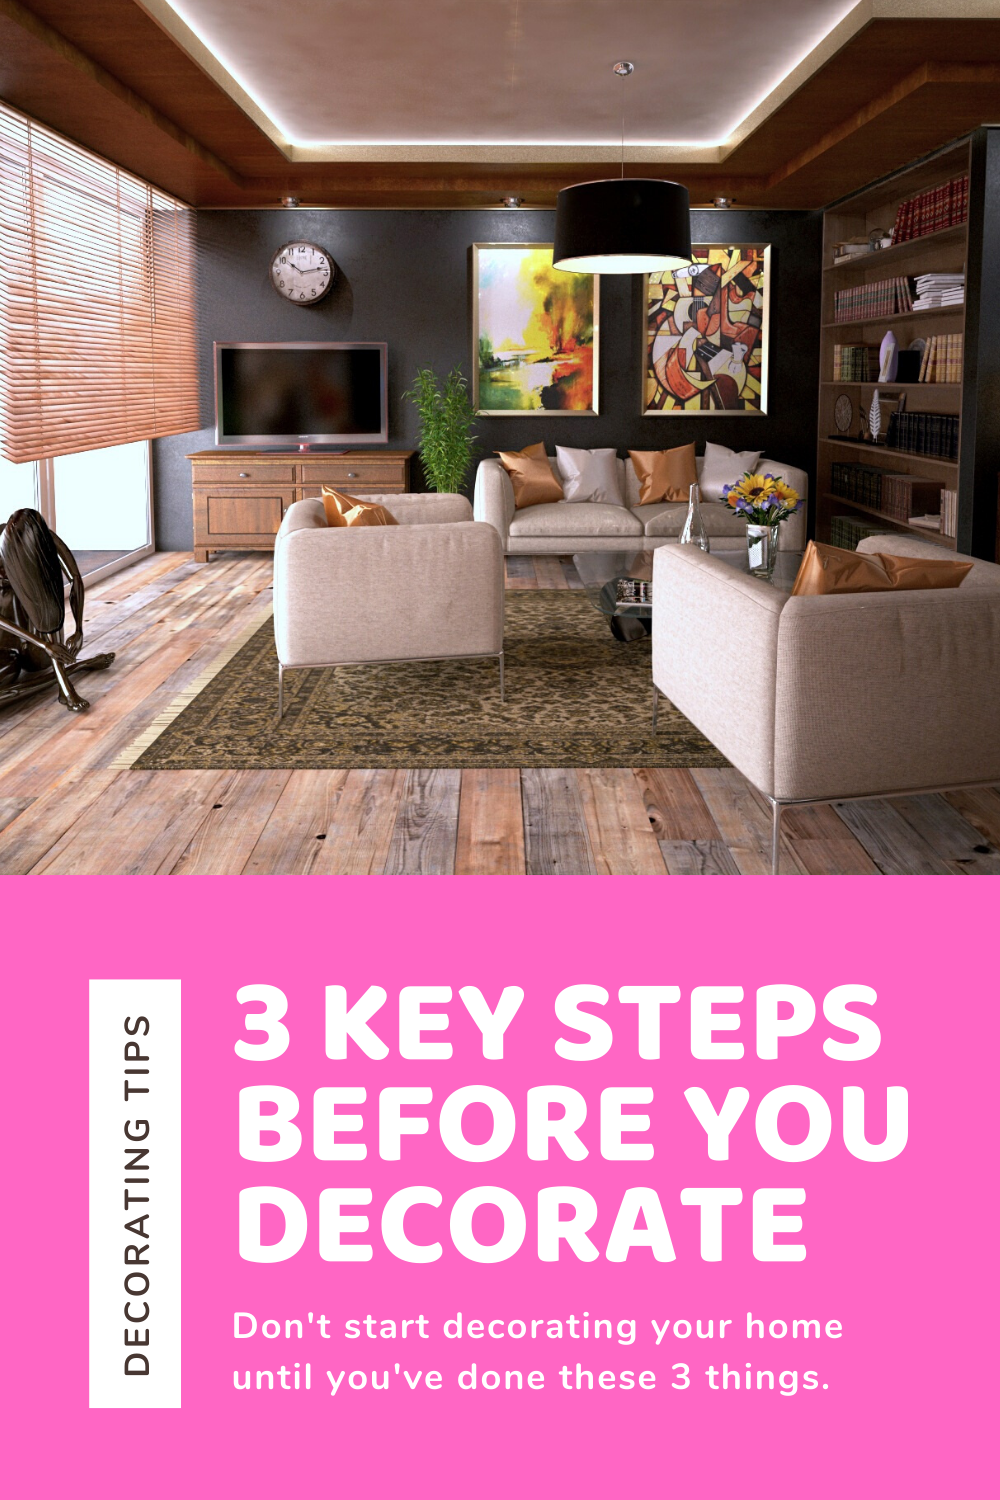 There are many different ways to decorate. However, there are a few things everyone should do to ensure the best results. Here are 3 things you should do before you decorate.  #decoratingtips #decoratingideas #homedecorating #decoratingmistakes #beforeyoudecorate